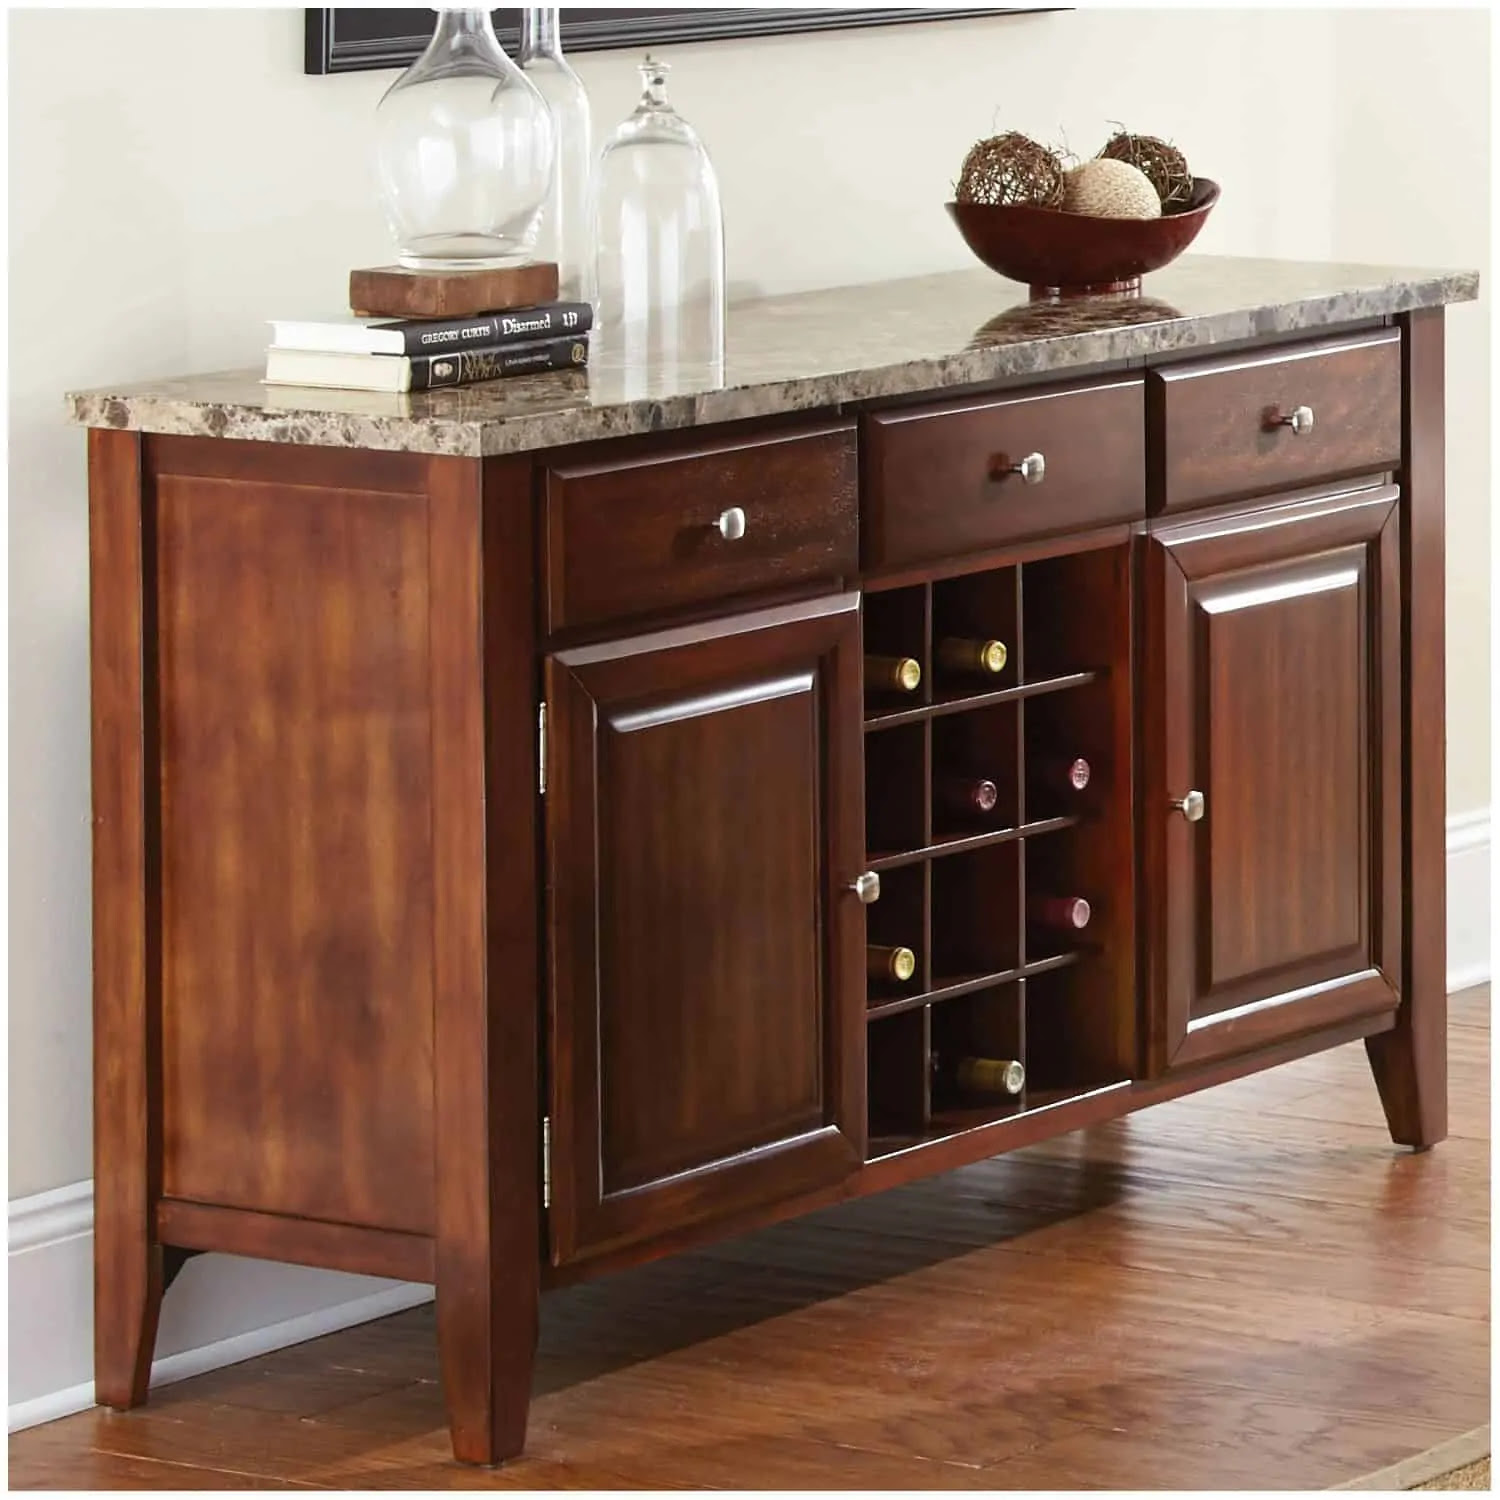 Know More About Buffet Cabinet - Decoration Channel